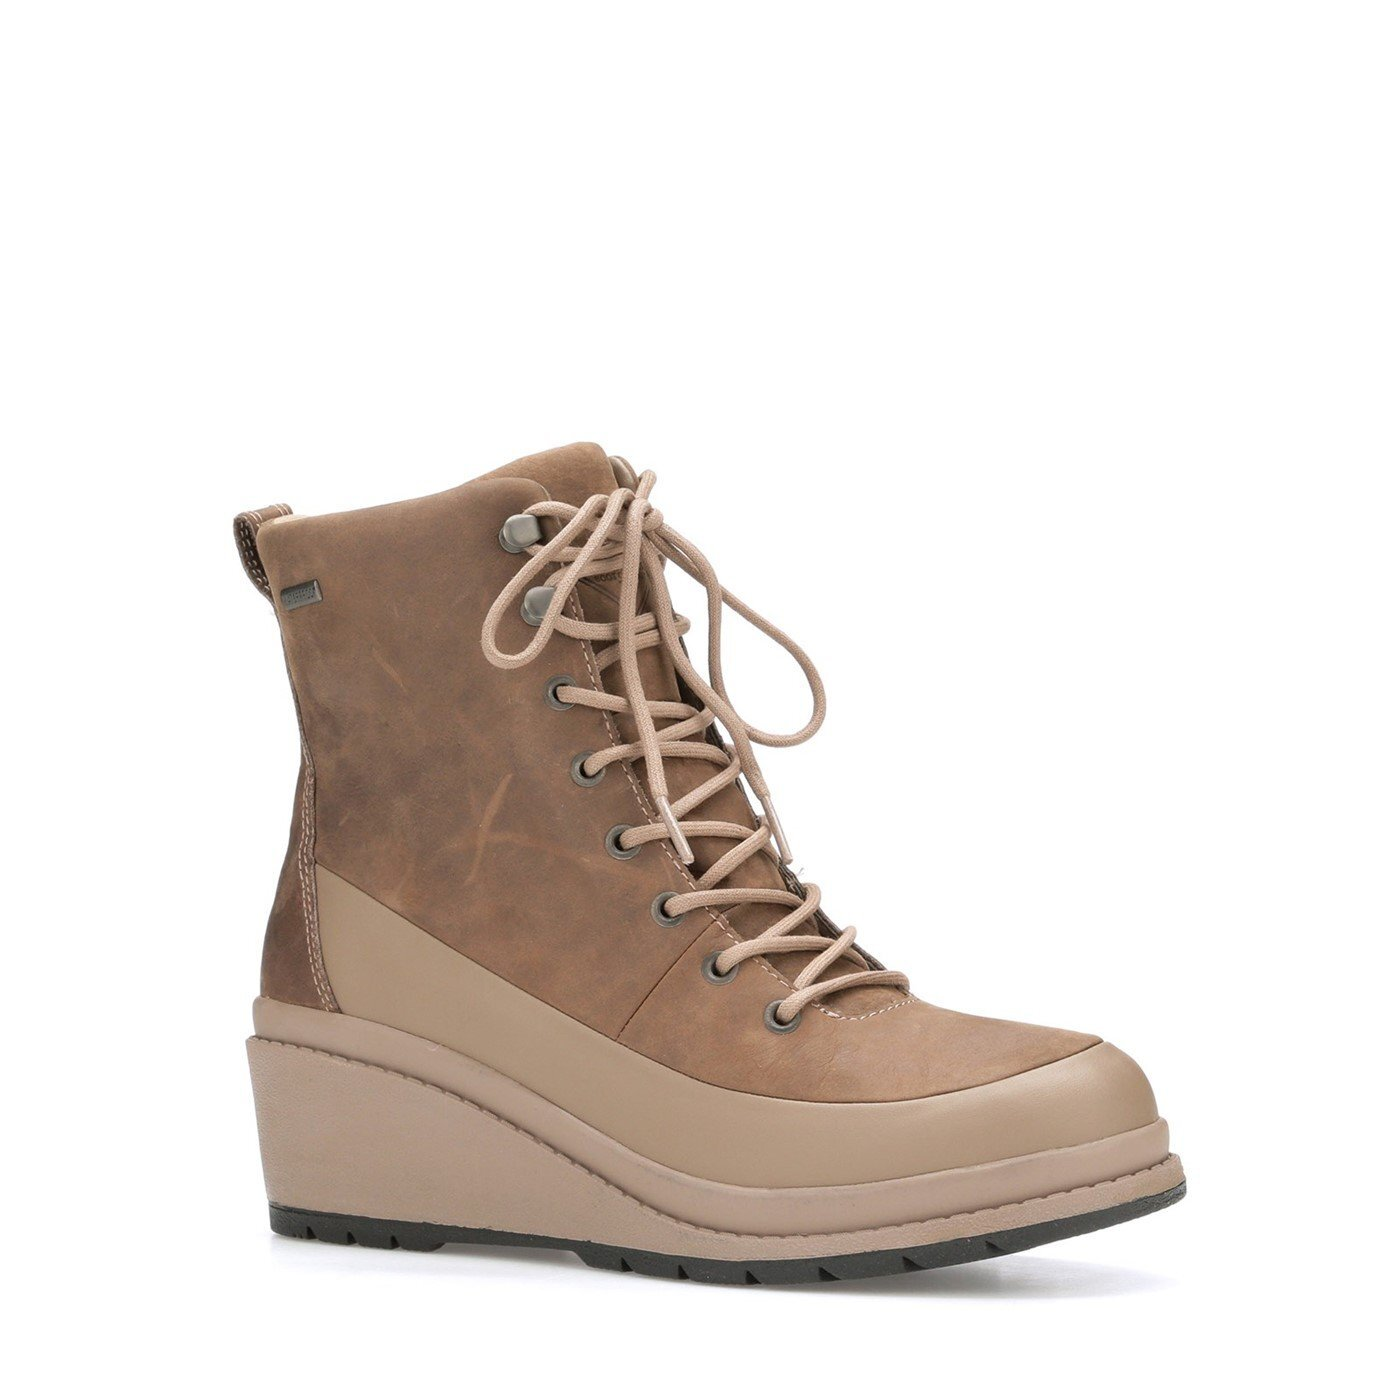 Muck Boots Womens/Ladies Liberty Leather Wedge Ankle Boots (7.5 UK) (Taupe)